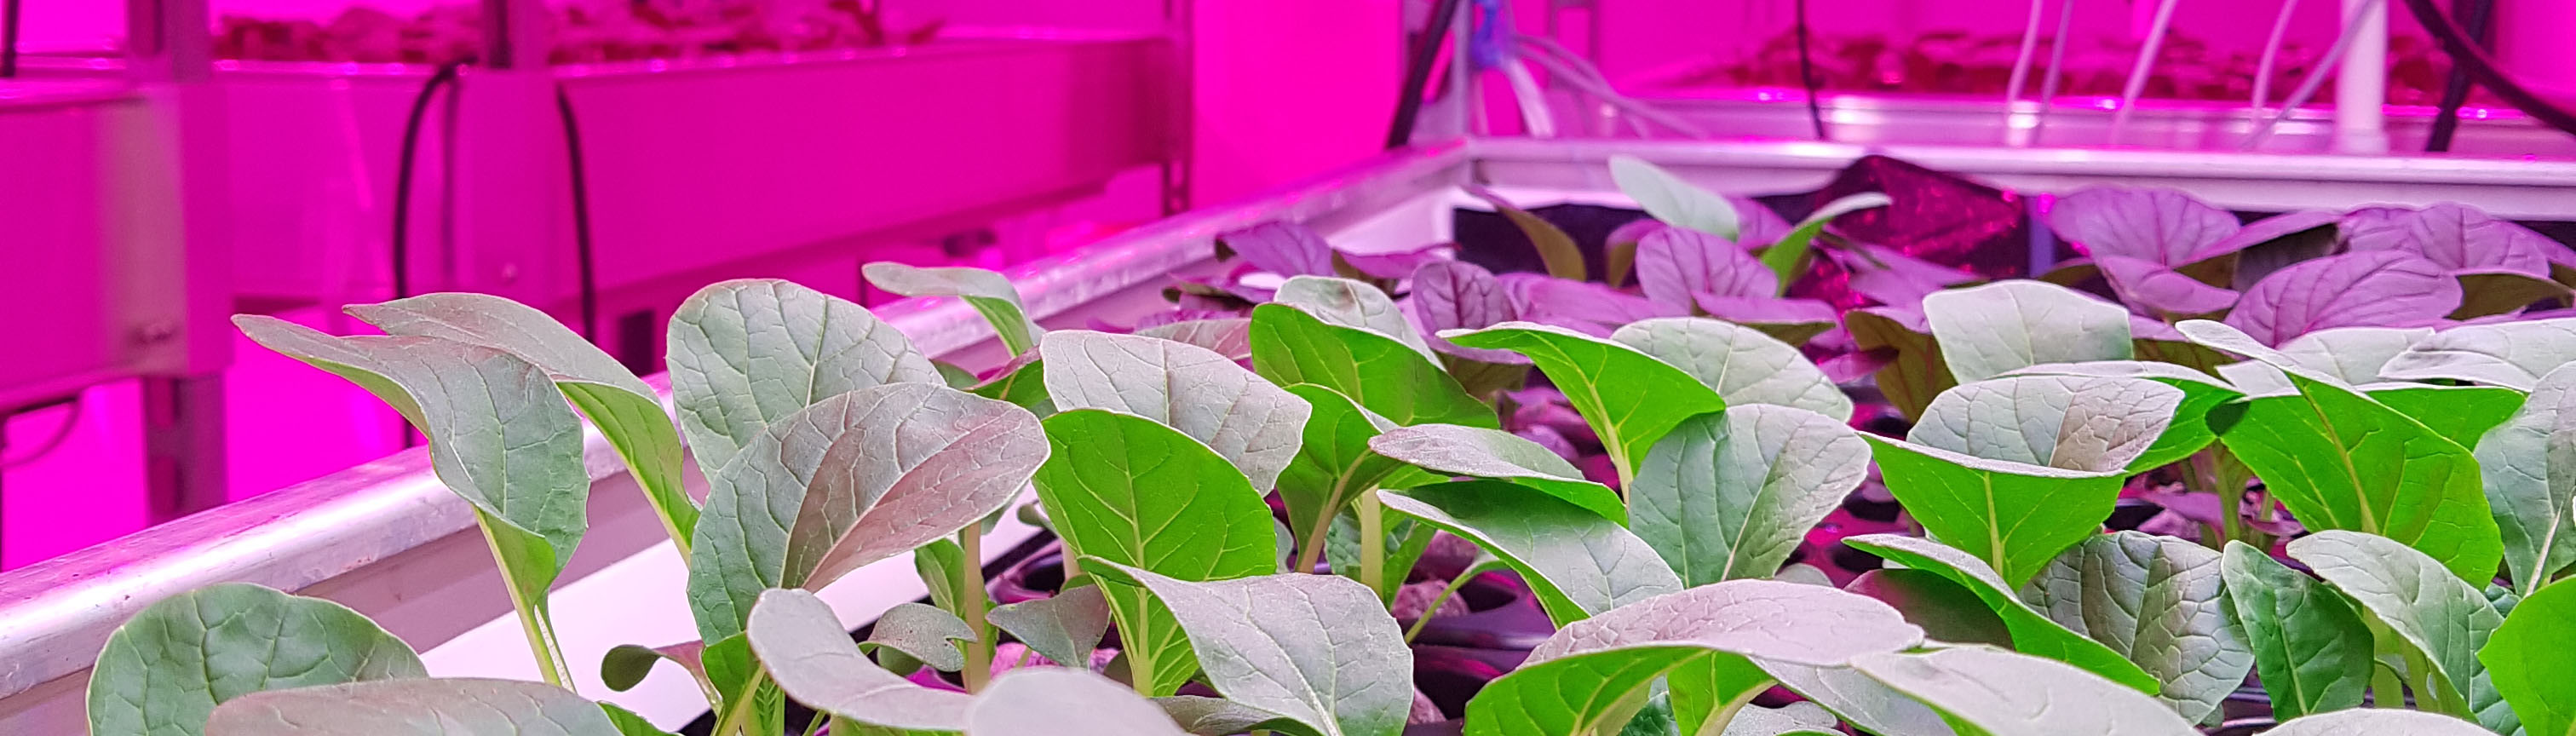 ASC Smart Indoor Farming